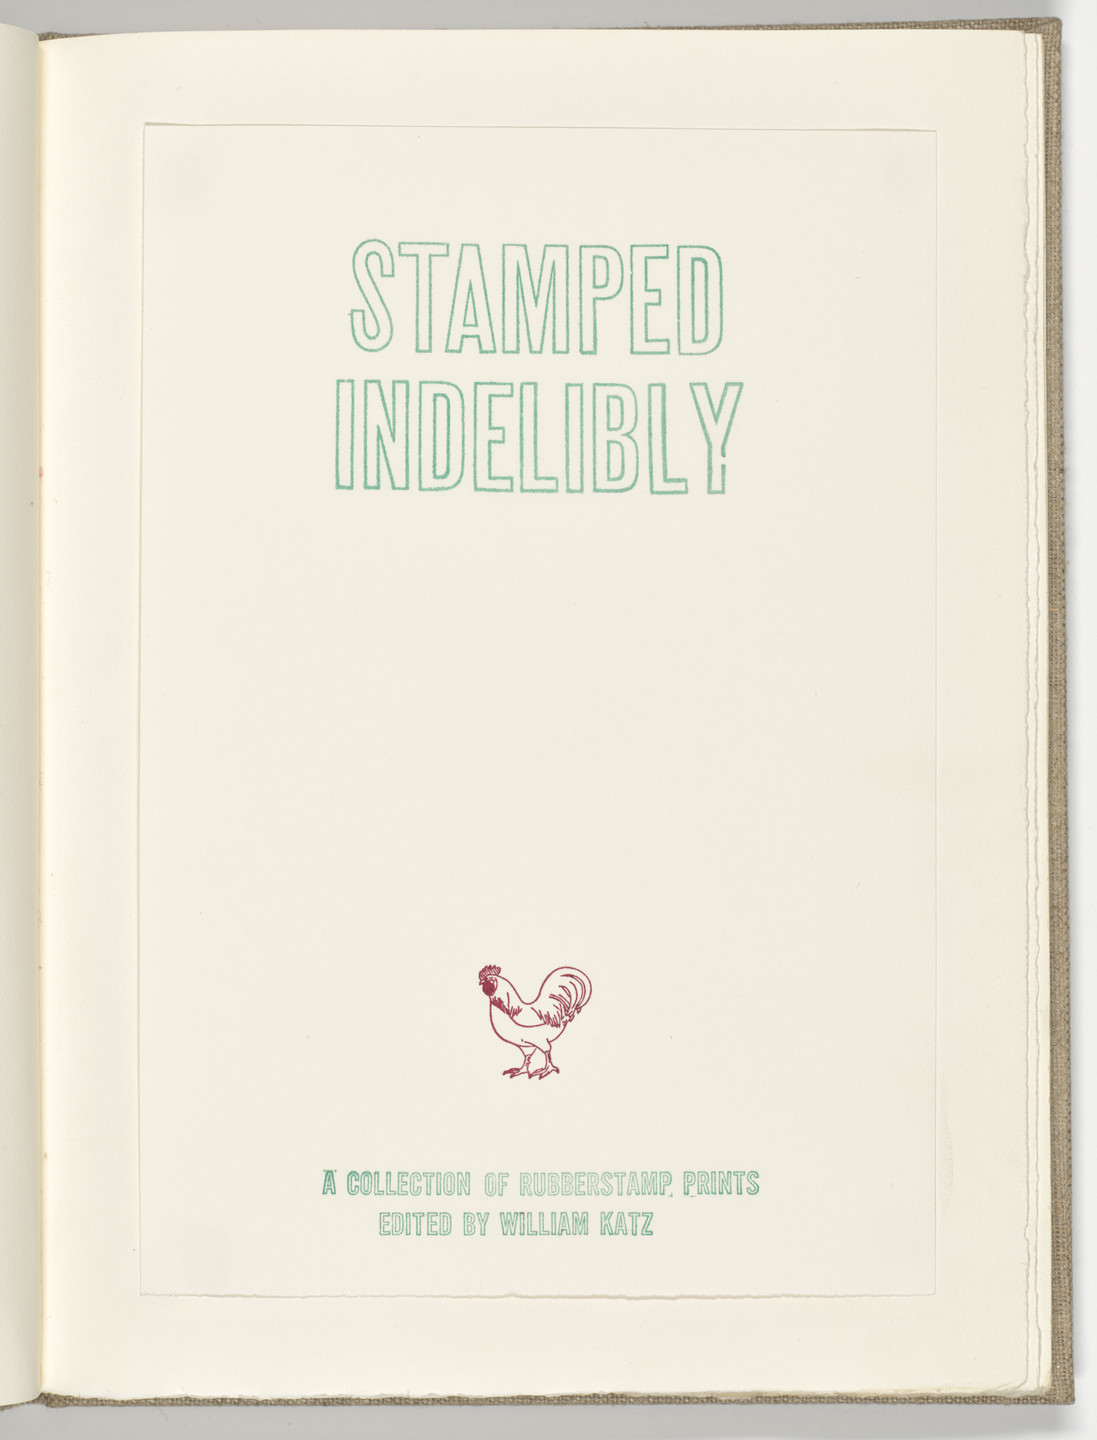 Various Artists, Robert Creeley, Allen Ginsberg, Red Grooms, Robert Indiana, Allen Jones, Kenneth Koch, Josef Levi, Gerard Malanga, Marisol (Marisol Escobar), Claes Oldenburg, Peter Saul, Andy Warhol, Tom Wesselmann, John Willenbecher. Stamped Indelibly. 1967